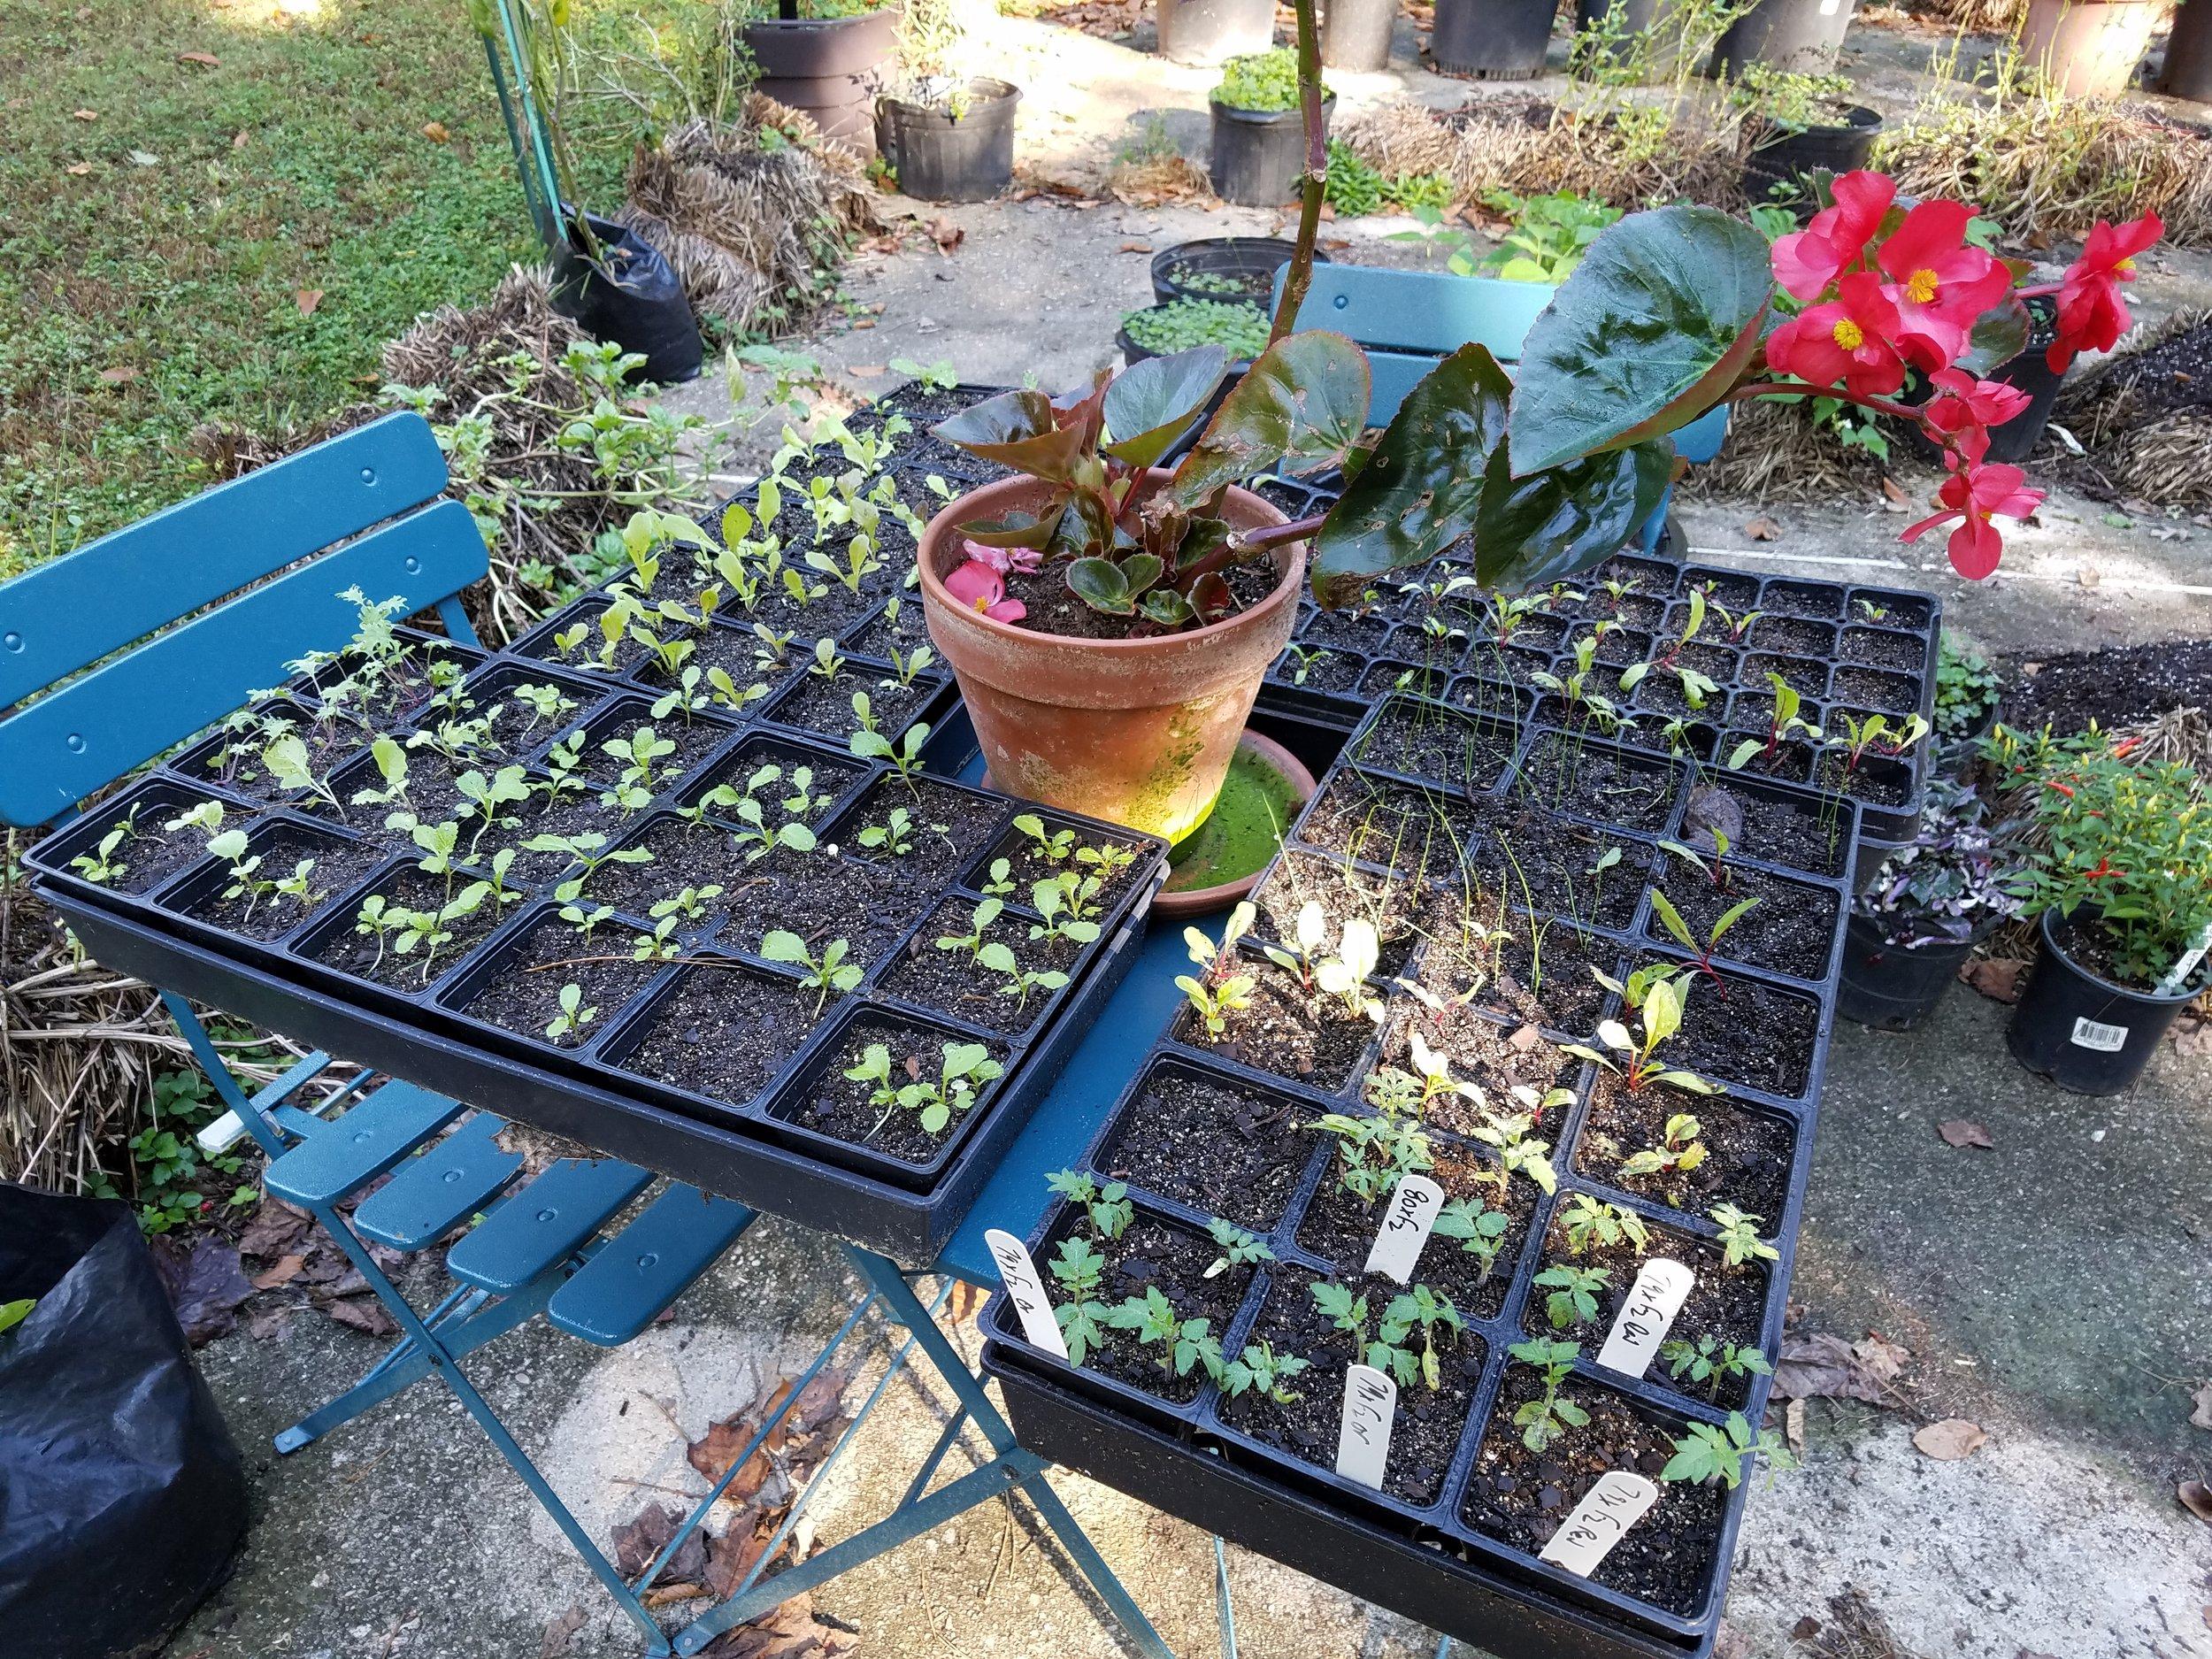 Recently transplanted seedlings sizing up for fall planting